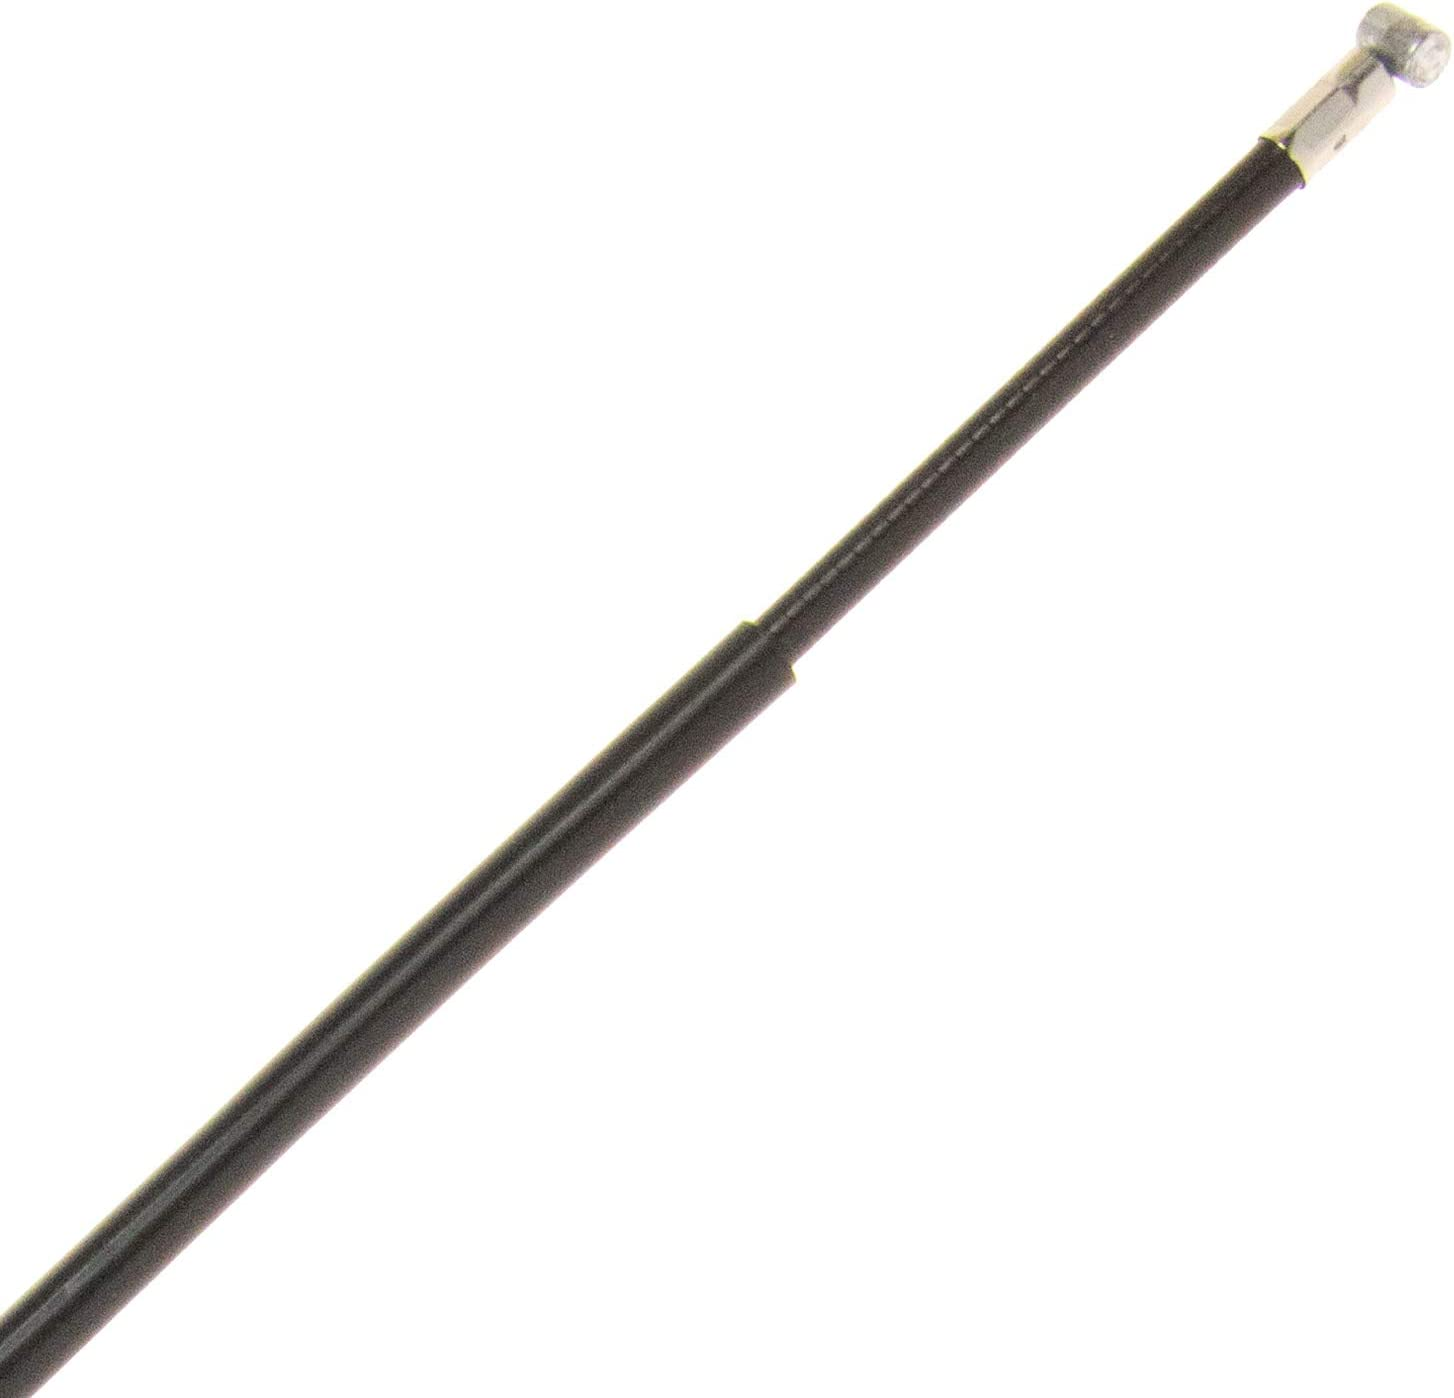 Parking Brake Cable compatible with 1999-2004 Honda TRX400EX Sportrax Replaces 43455-HN1-003 3050-1212 SPI